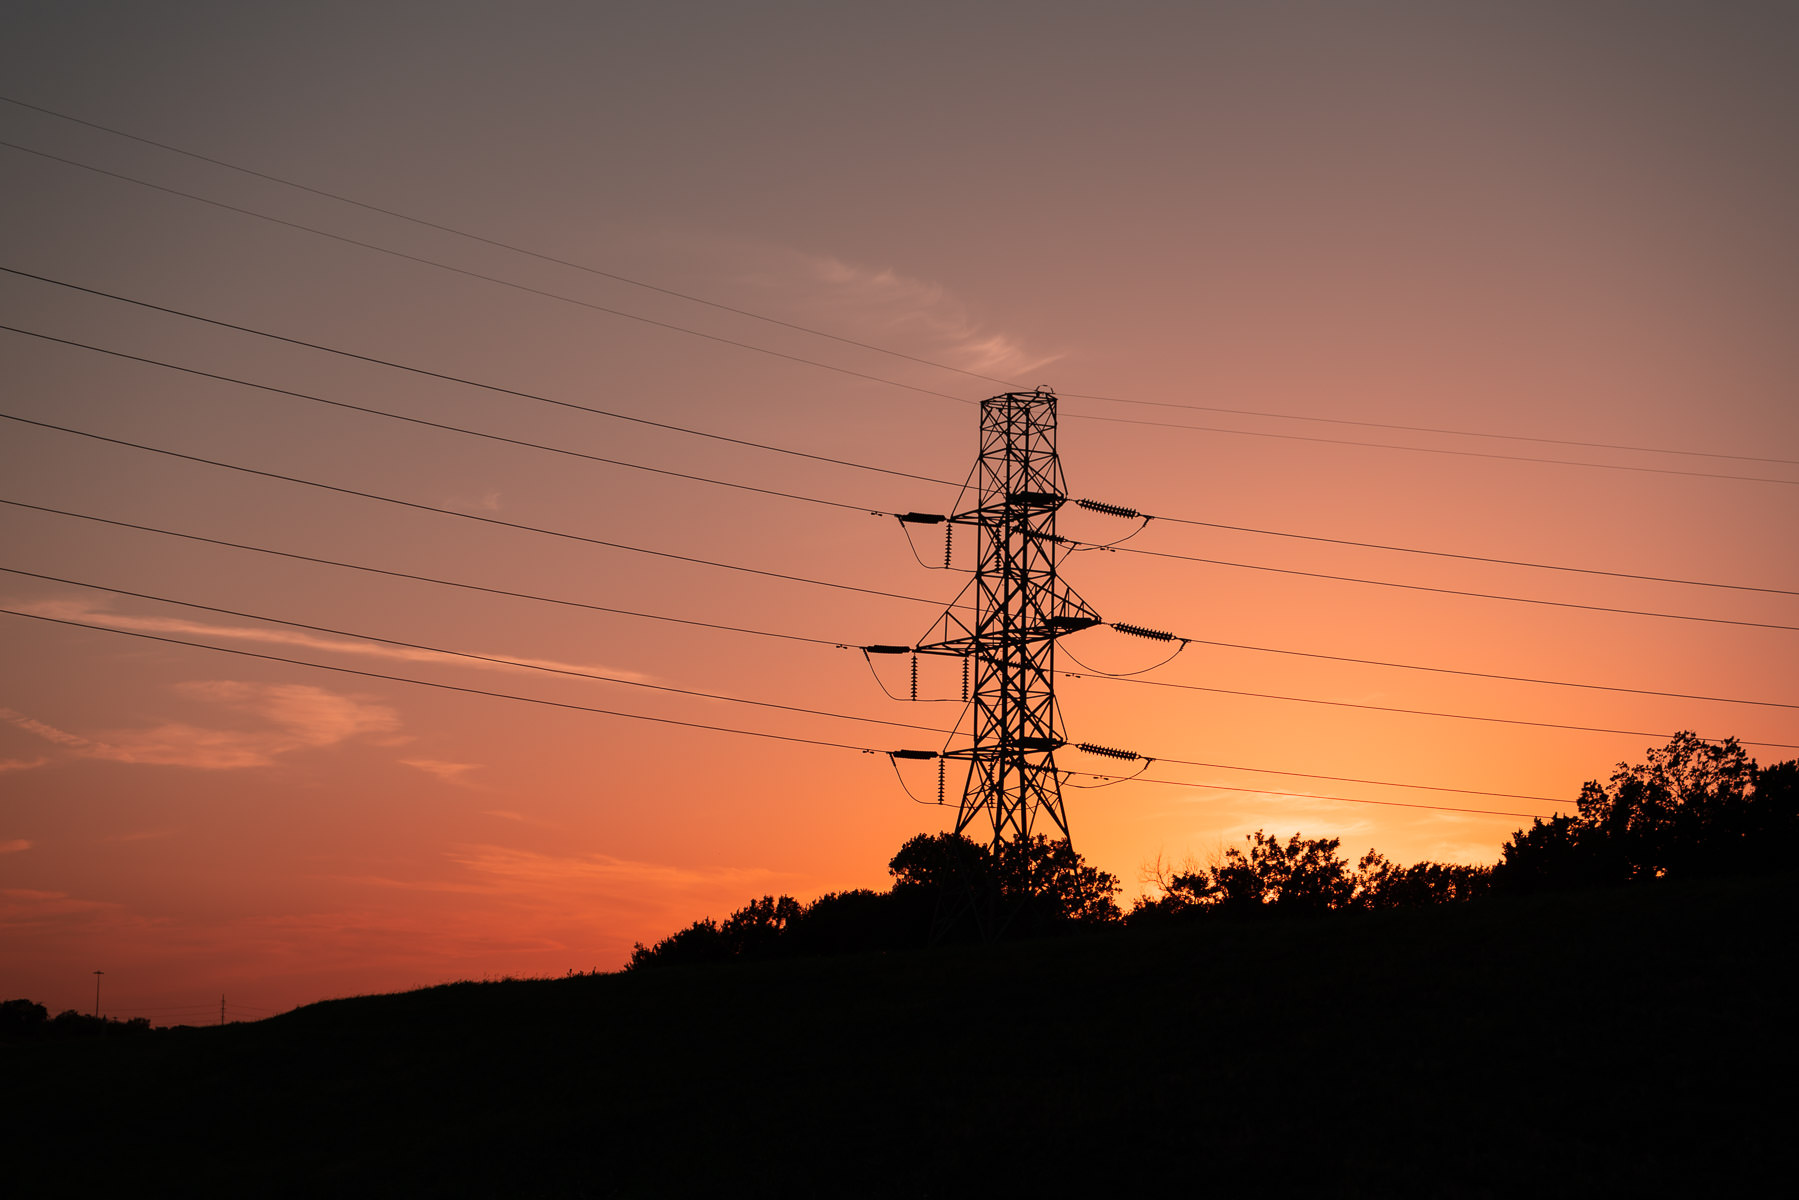 The sun sets on a electric pylon in Irving, Texas.